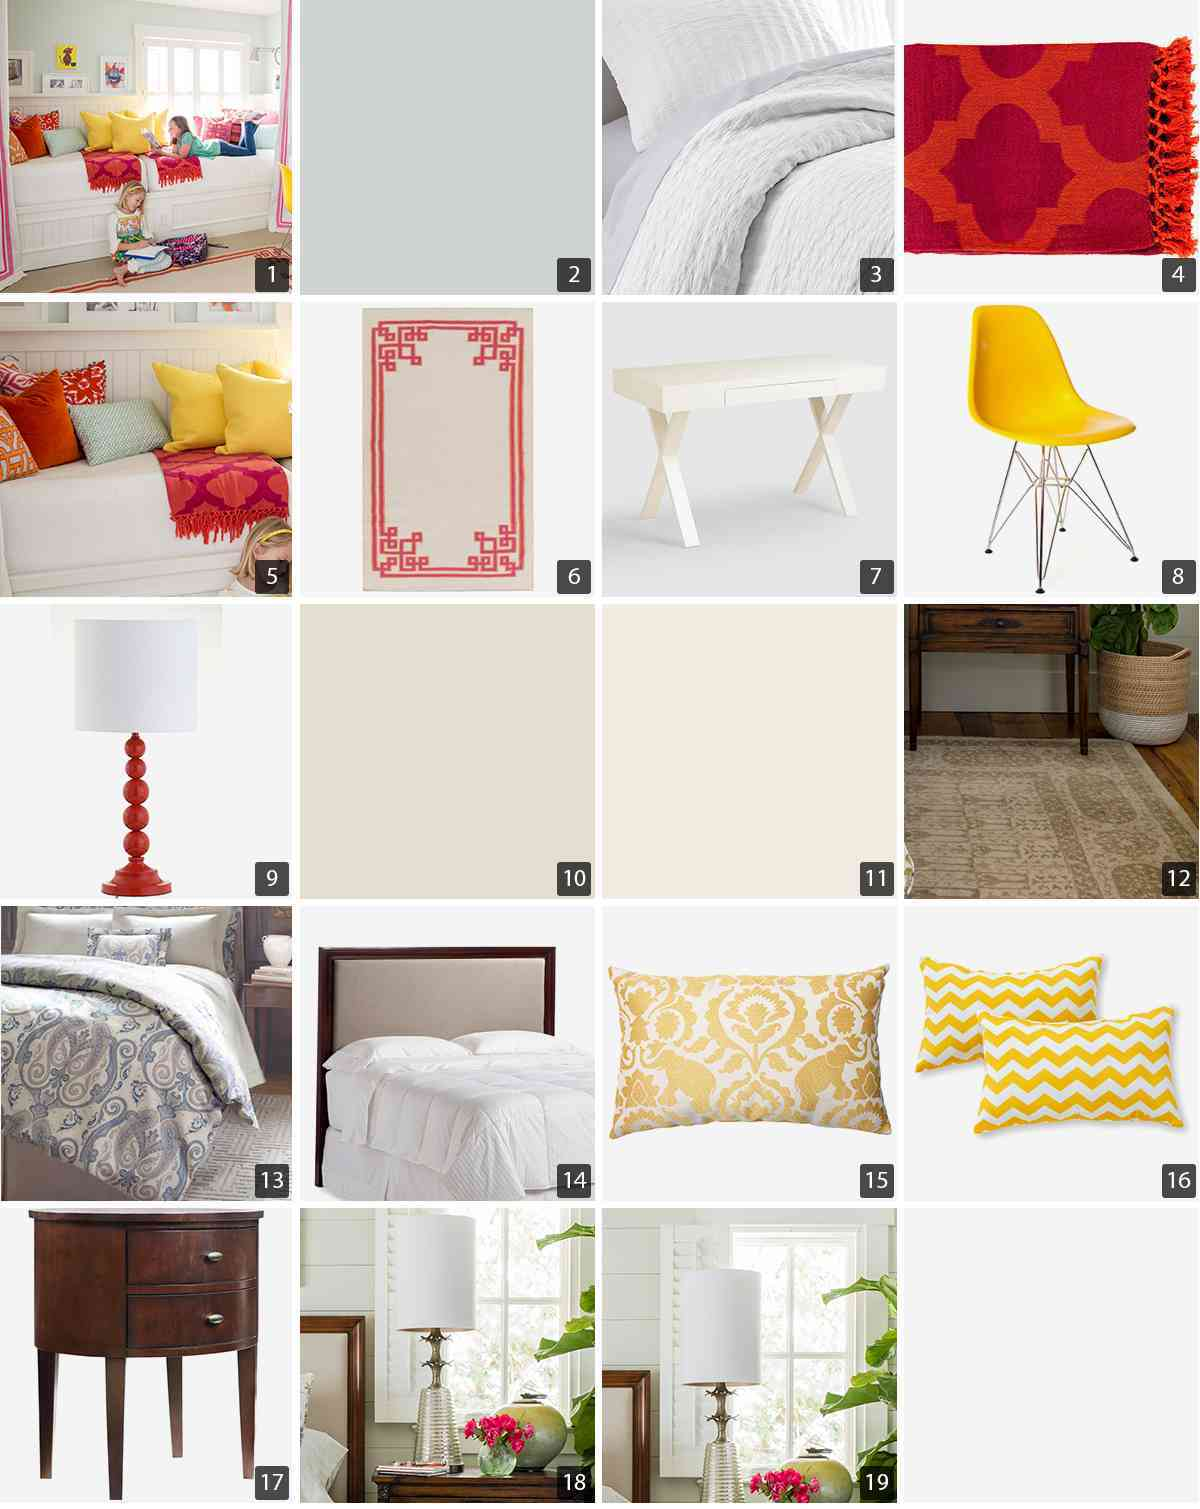 Collage of home products including duvet covers, throw pillows, and accent furniture photo